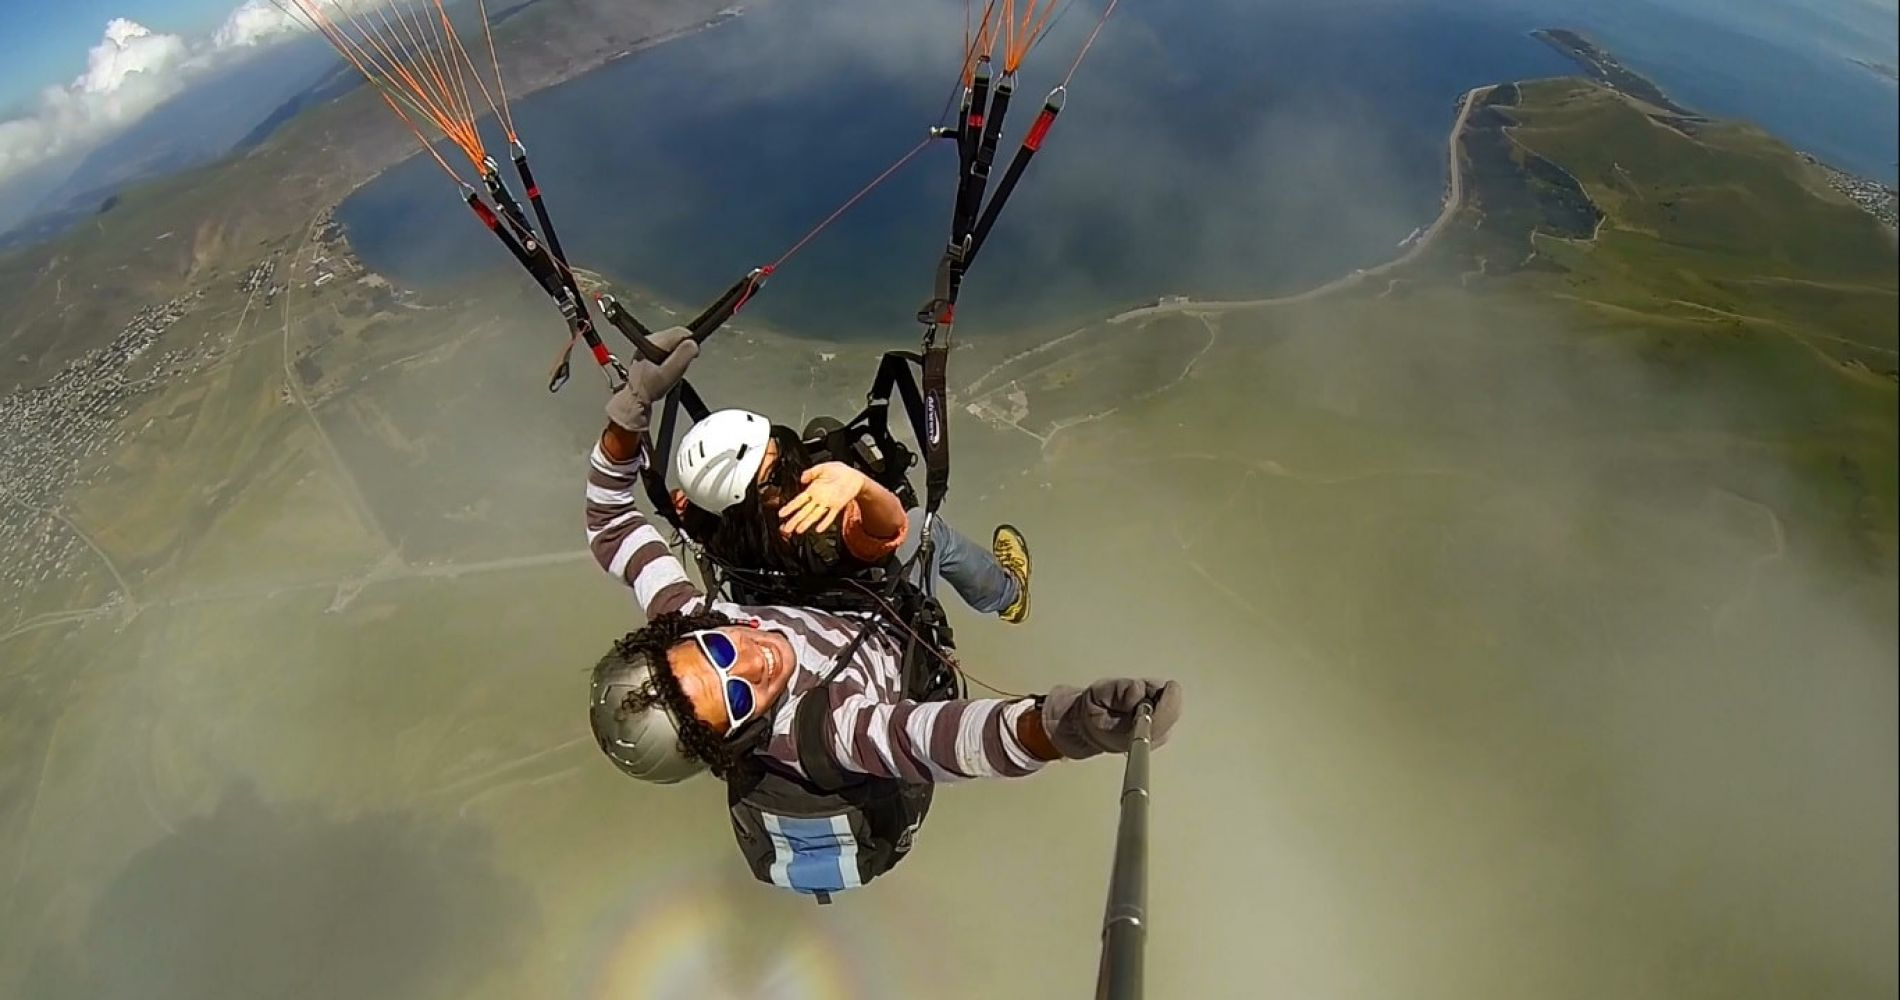 Mind-blowing Paragliding Experience in Armenia for Two